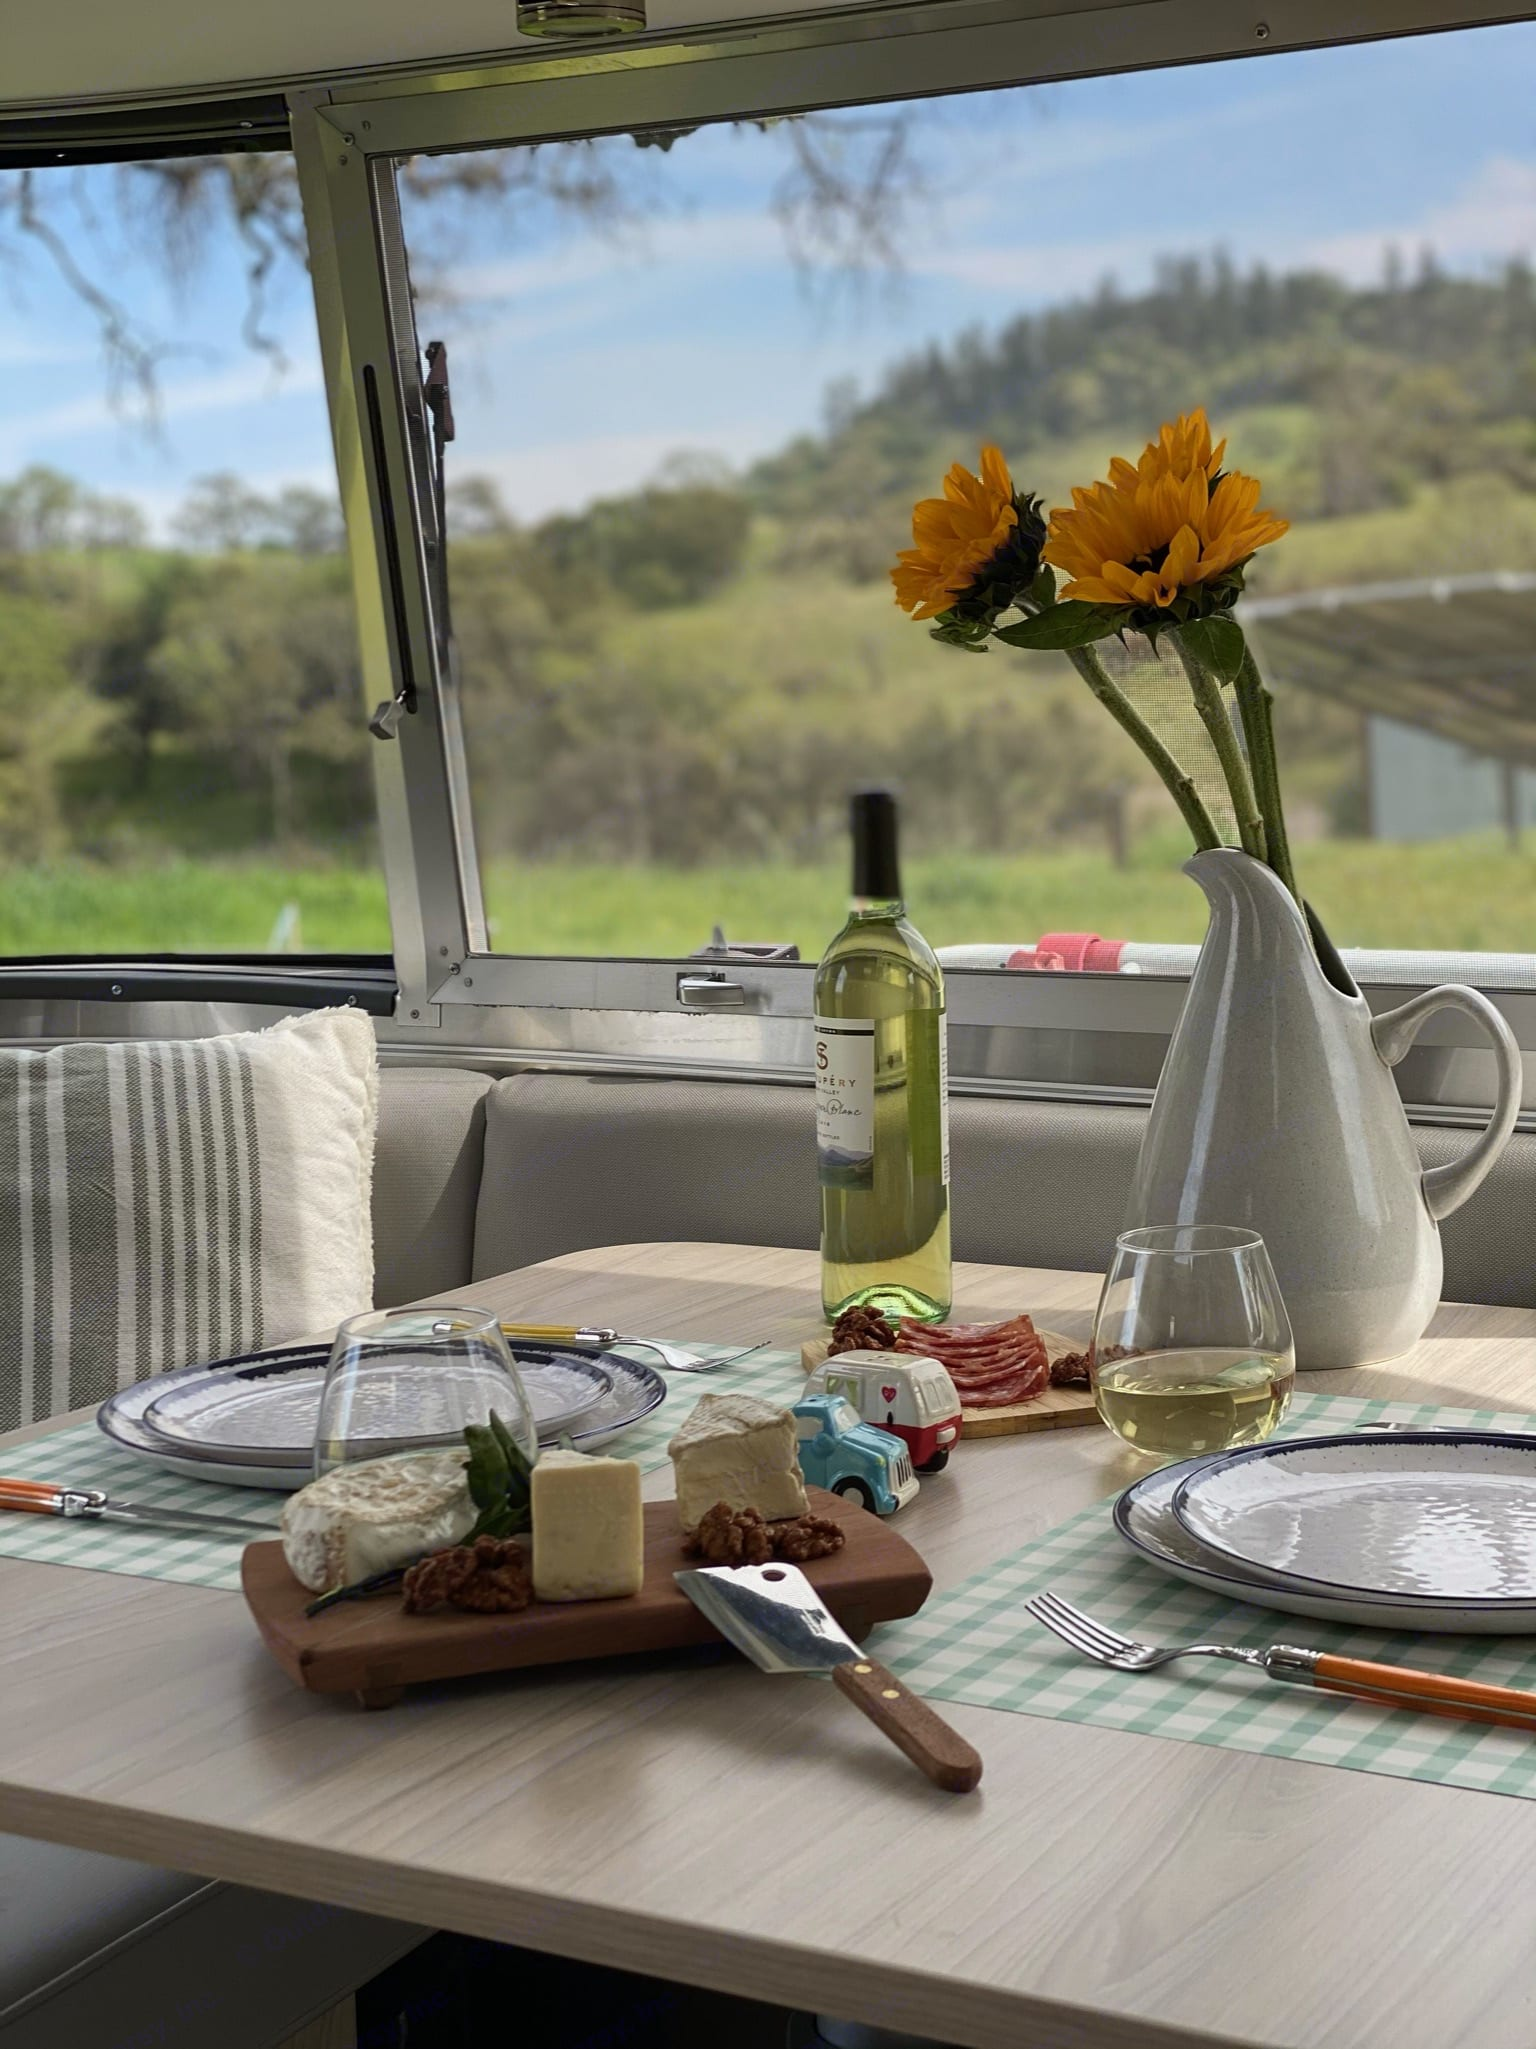 The Unruly Puli has wraparound Windows in the dining area and the bedroom. Enjoy the dinette with a cheese plate and a glass of wine!. Airstream Globetrotter 2019